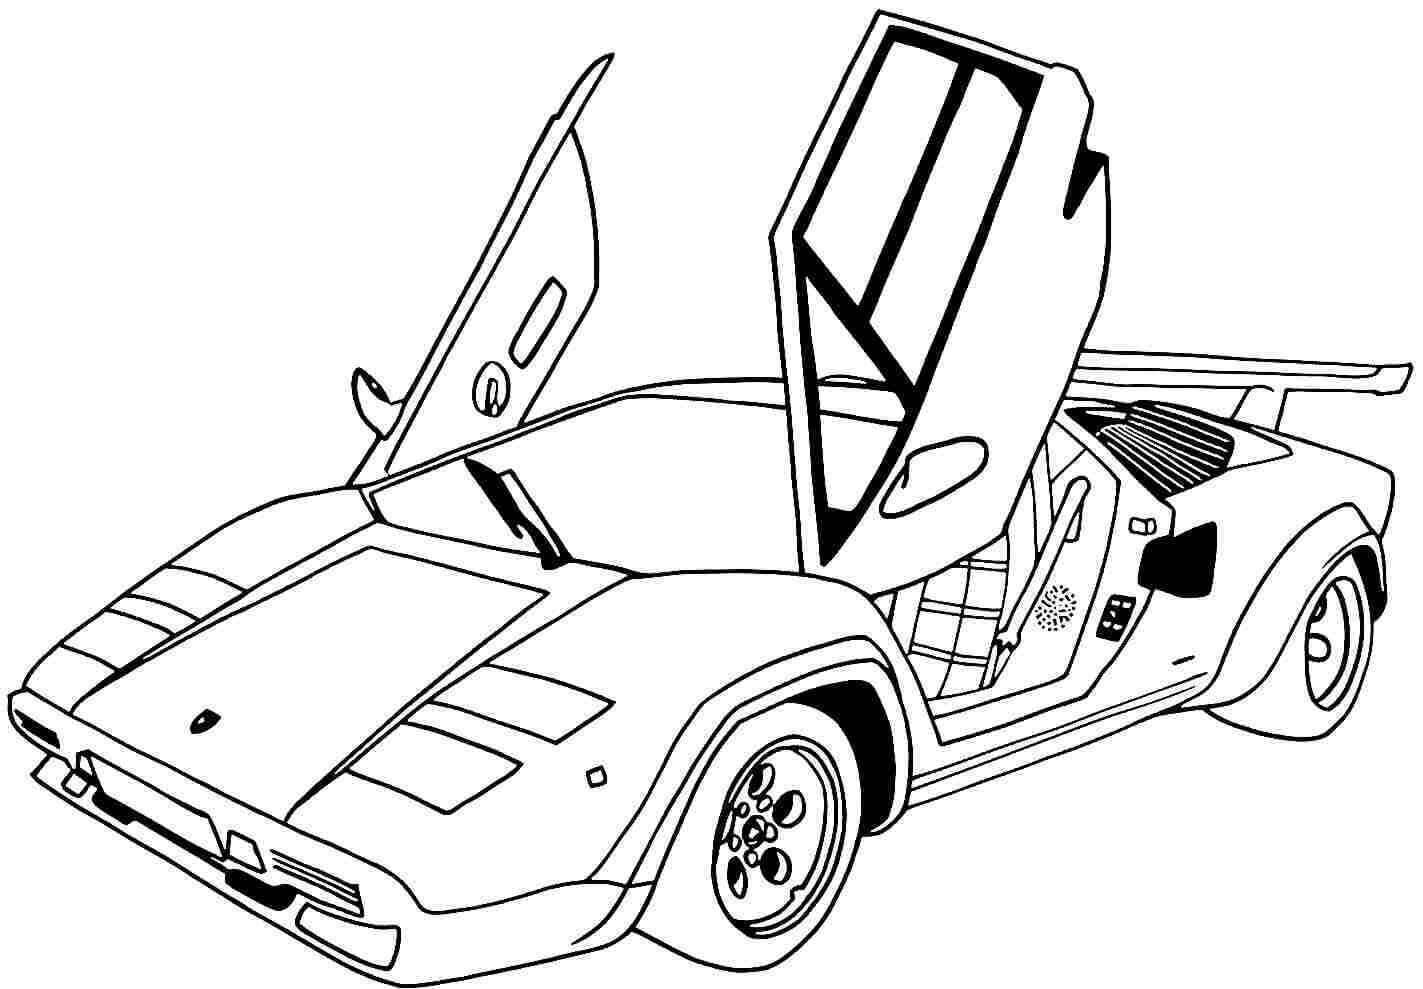 cars colouring top 25 free printable colorful cars coloring pages online cars colouring